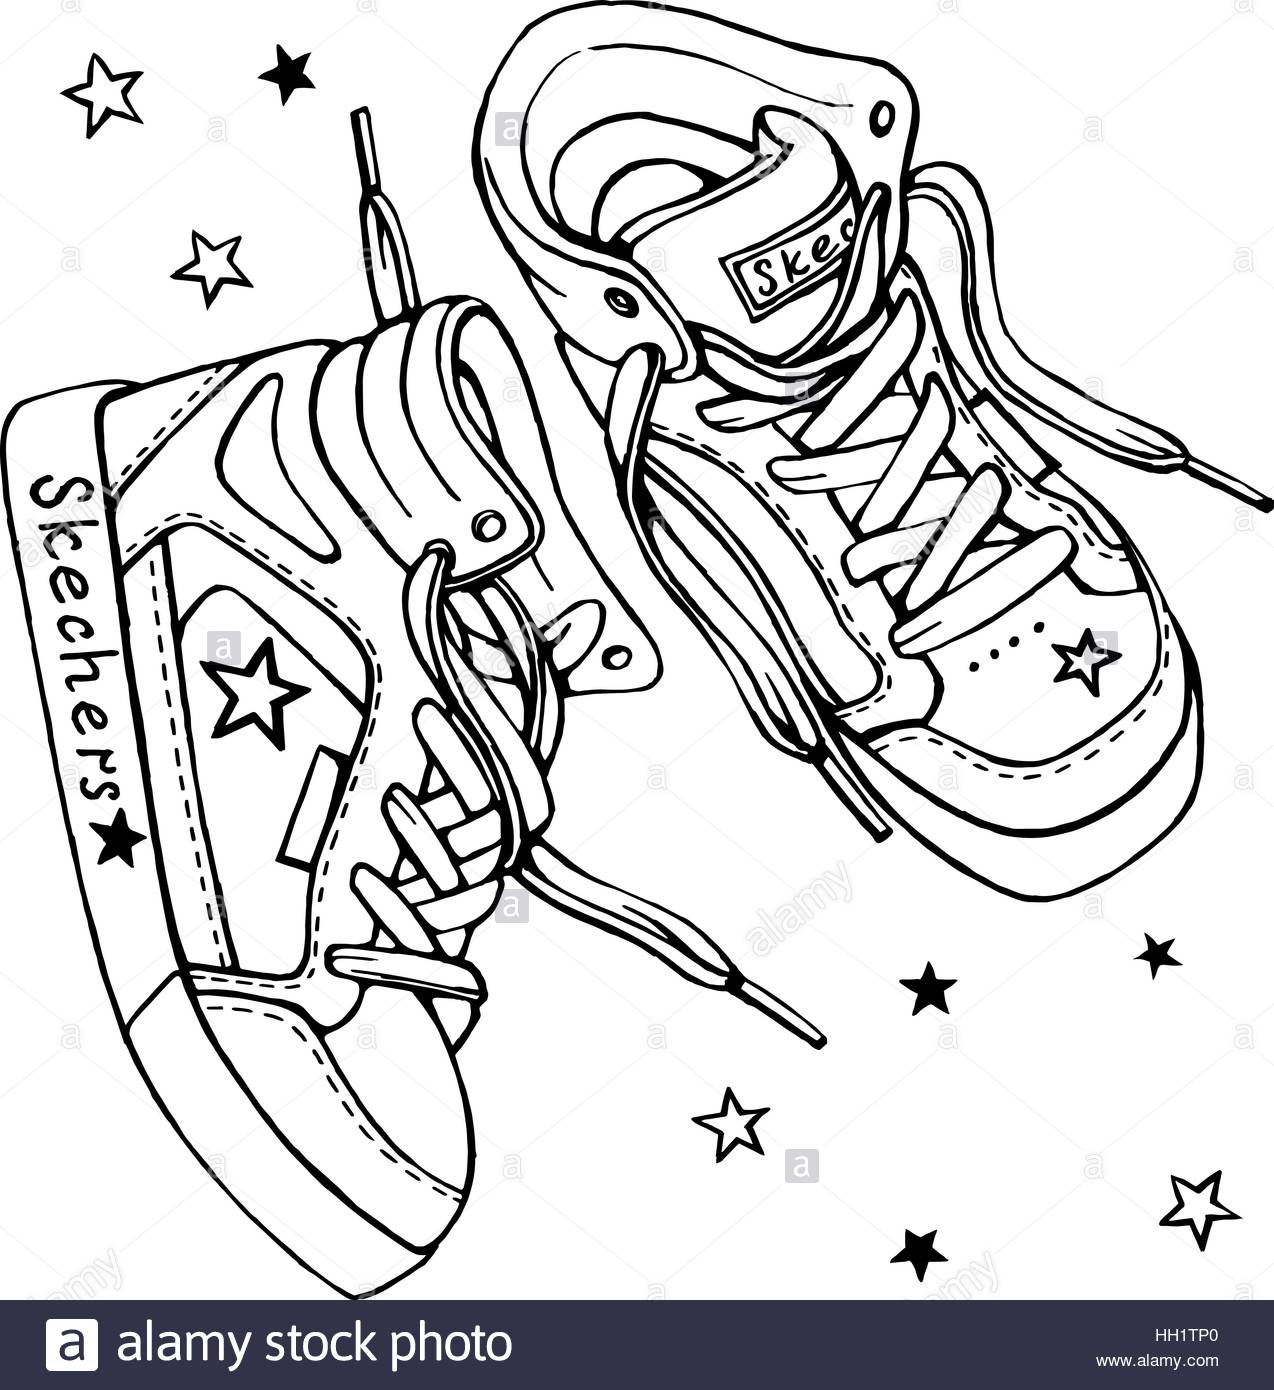 1274x1390 Vector Sketch Of A Pair Of Sneakers With Laces On A White